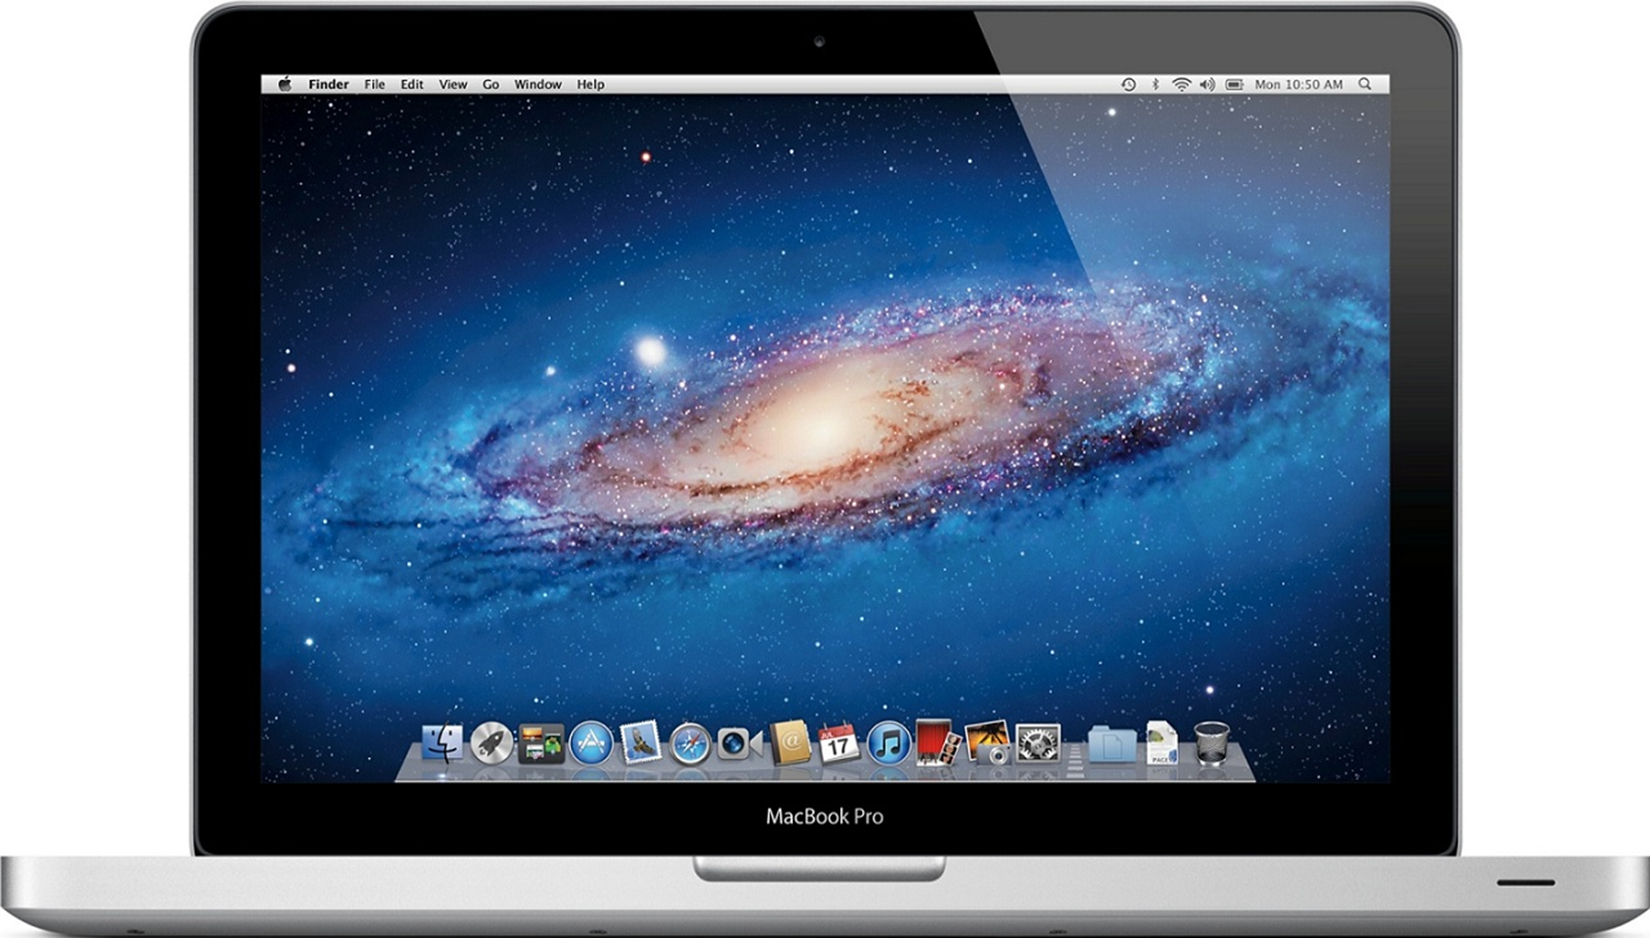 Apple MacBook Pro 13.3 (Glossy) 2.7 GHz Intel Core i7 4 GB RAM 500 GB HDD (5400 U/Min.) [Early 2011]